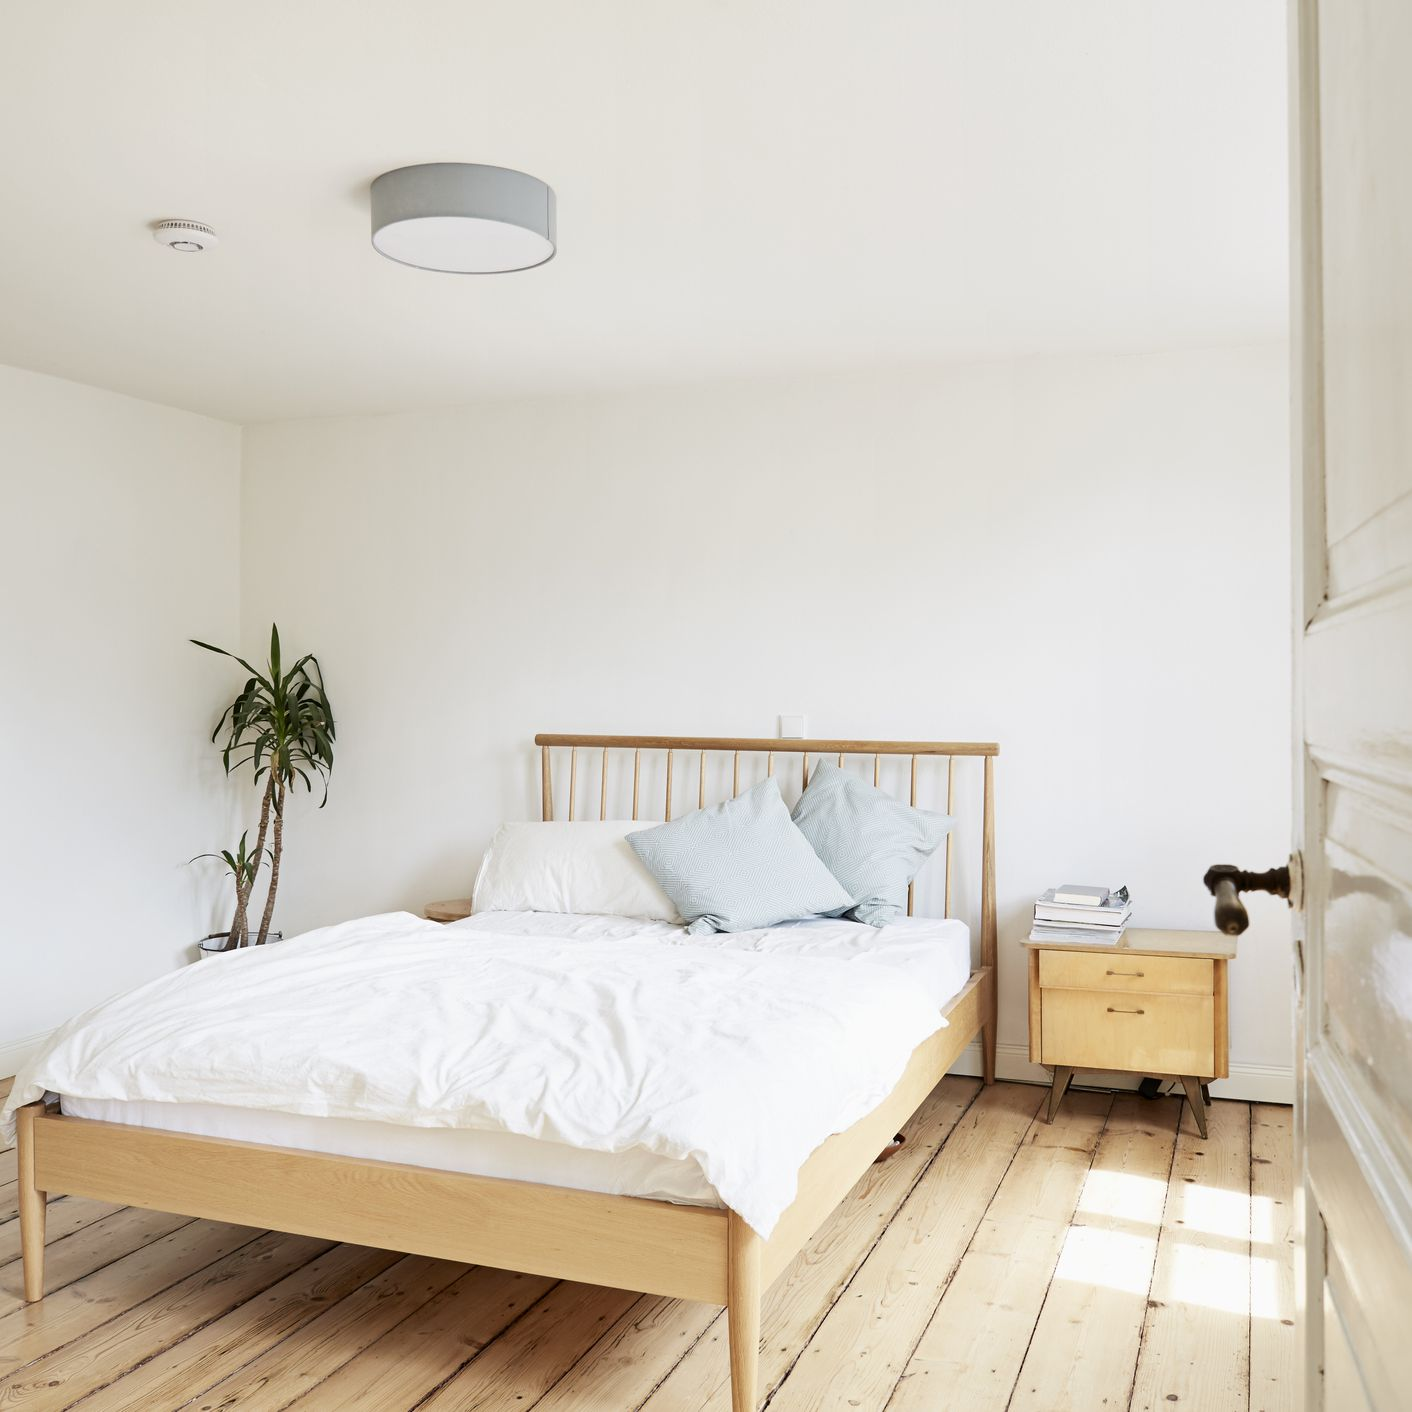 The 7 Best Places To Buy A Bed In 2019